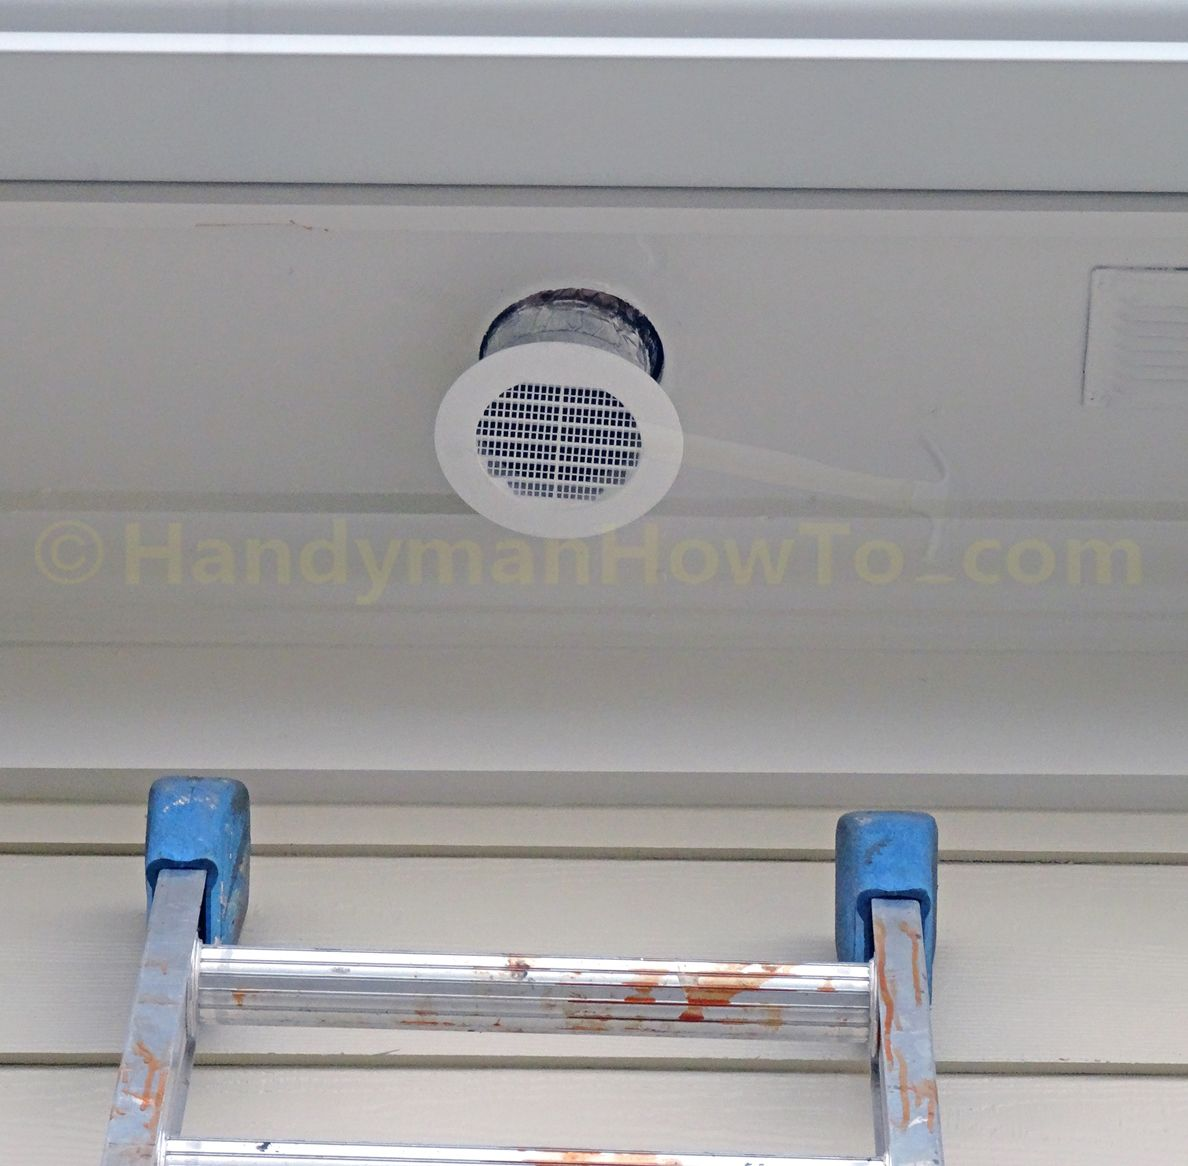 How to fit bathroom extractor fans - How To Install A Soffit Vent And Ductwork For A Bathroom Vent Fan Mount The